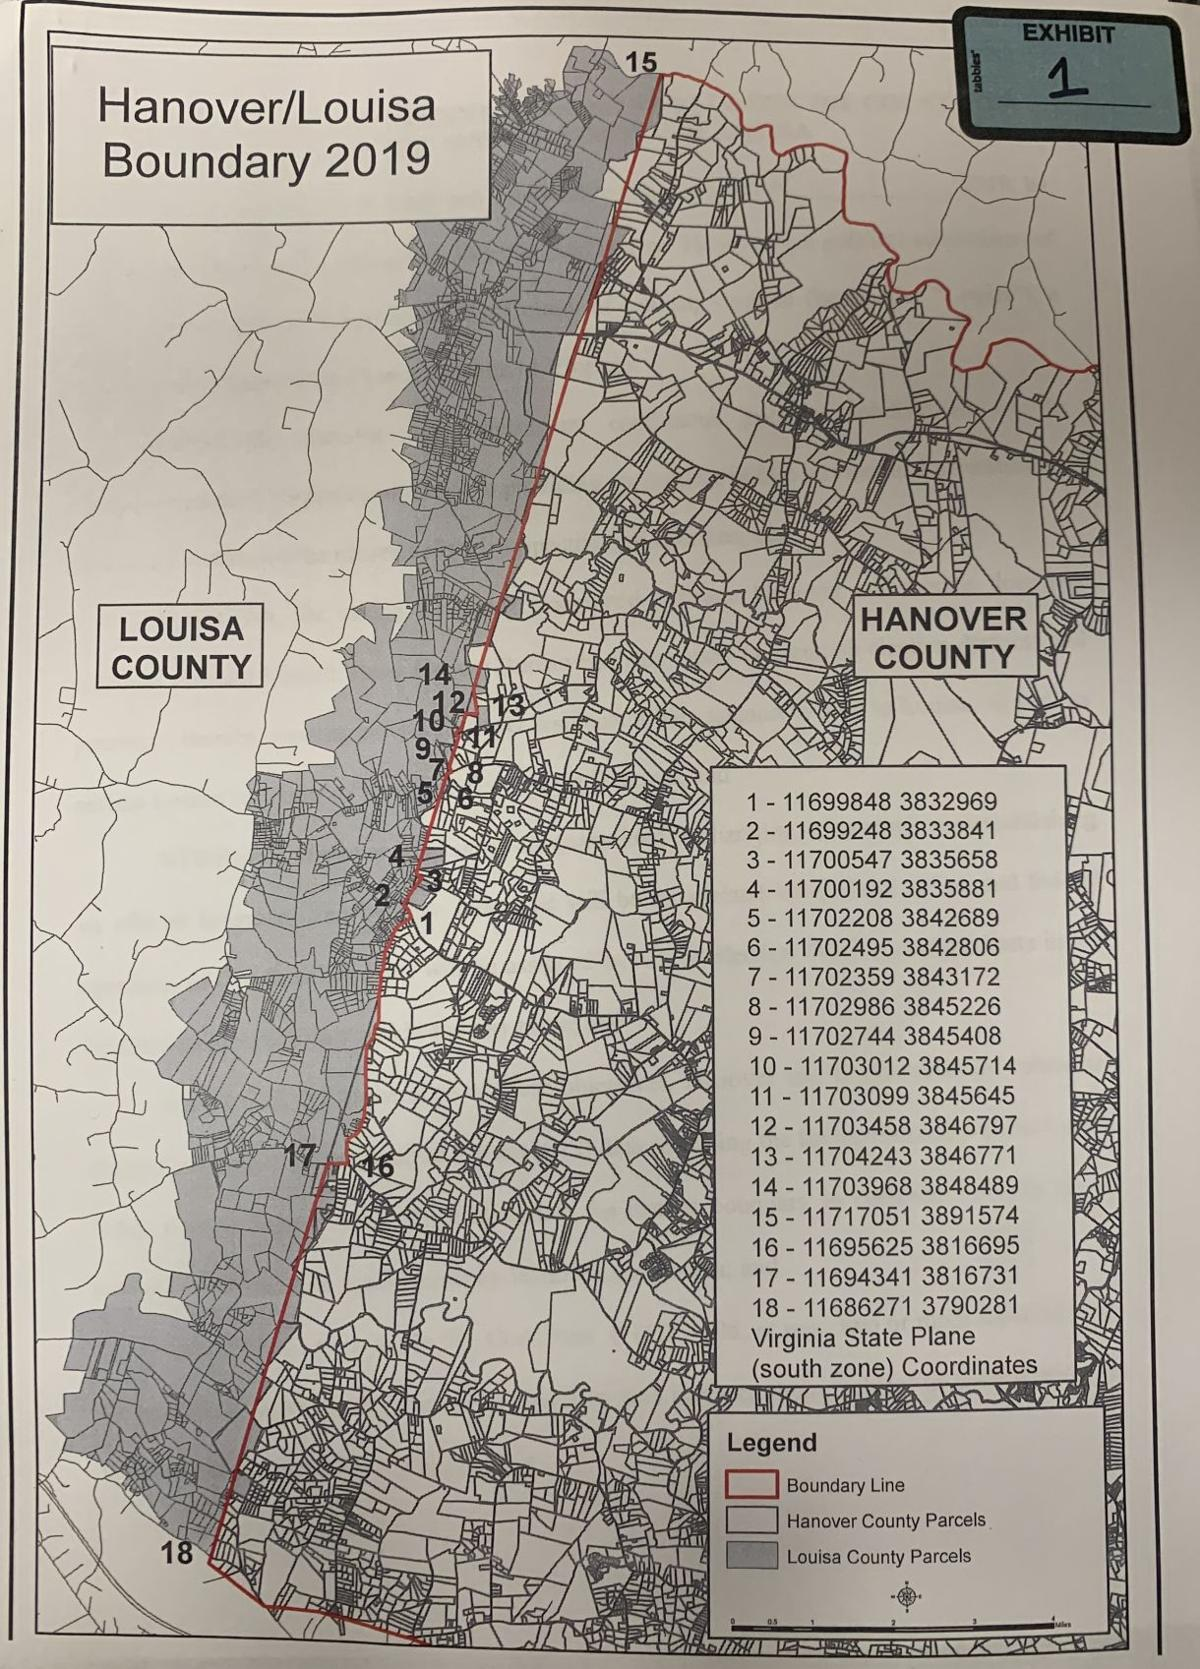 Proposed Hanover-Louisa Boundary Adjustment